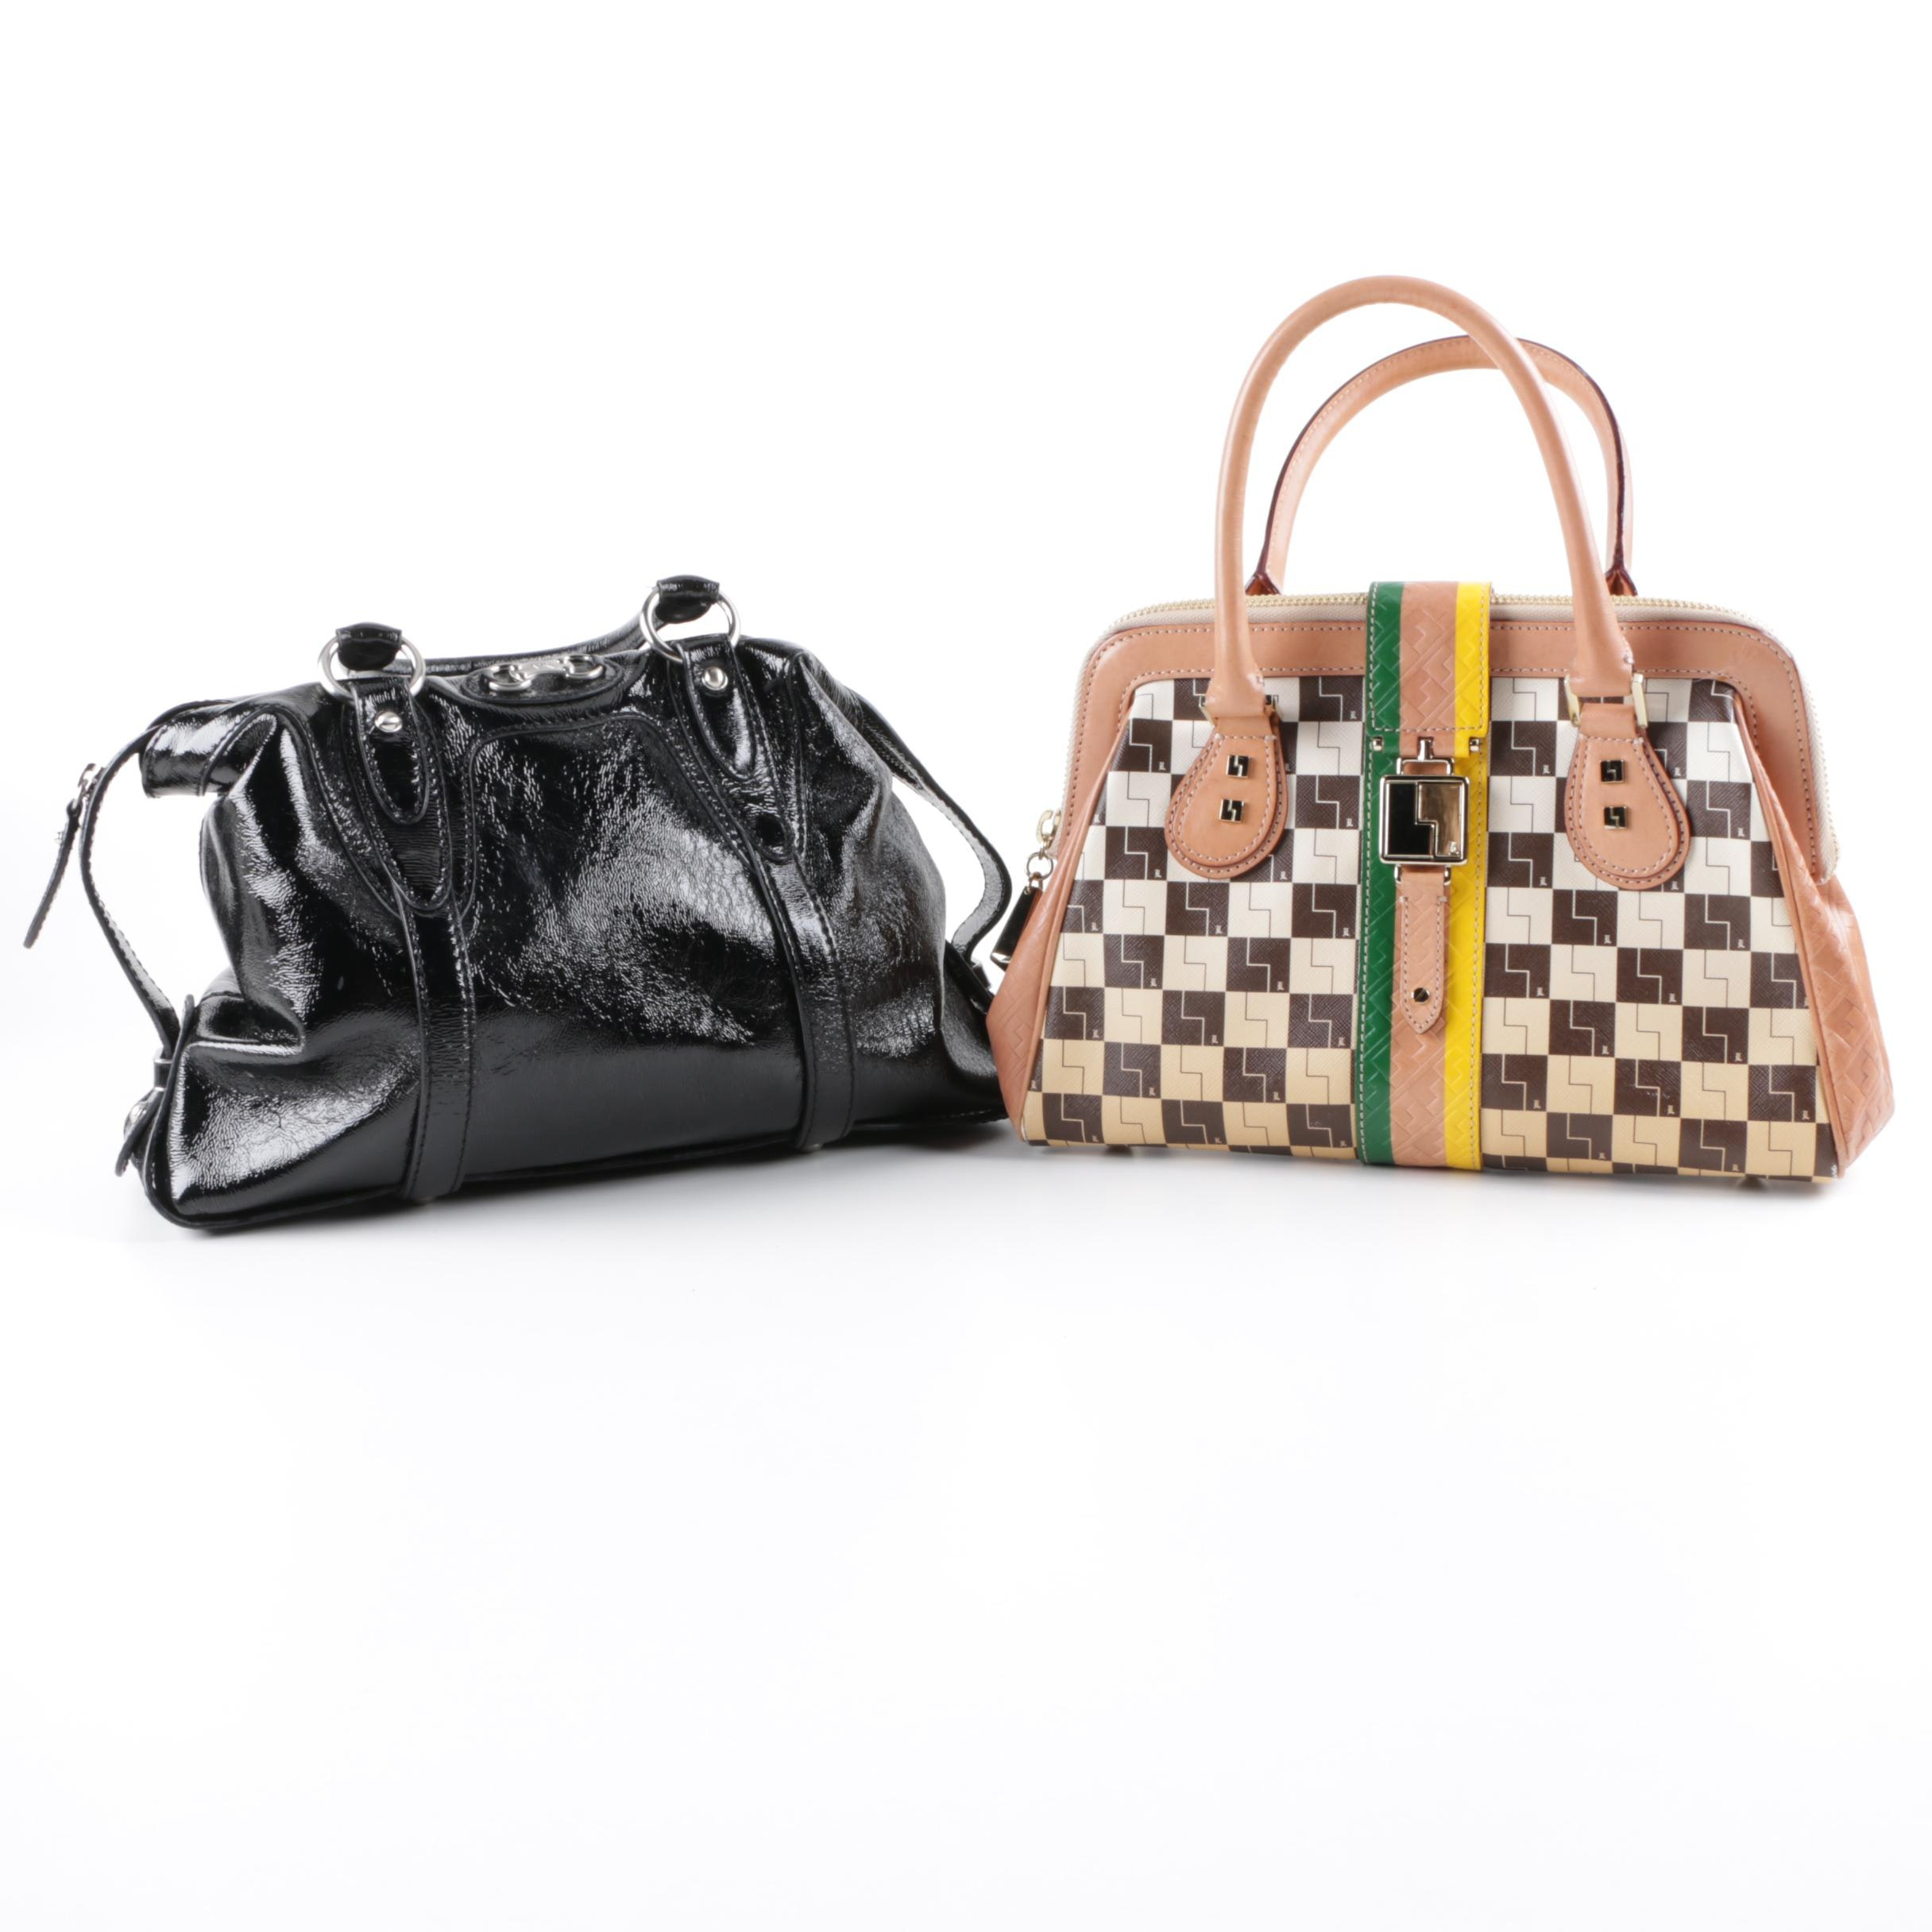 L.A.M.B. and MICHAEL Michael Kors Handbags